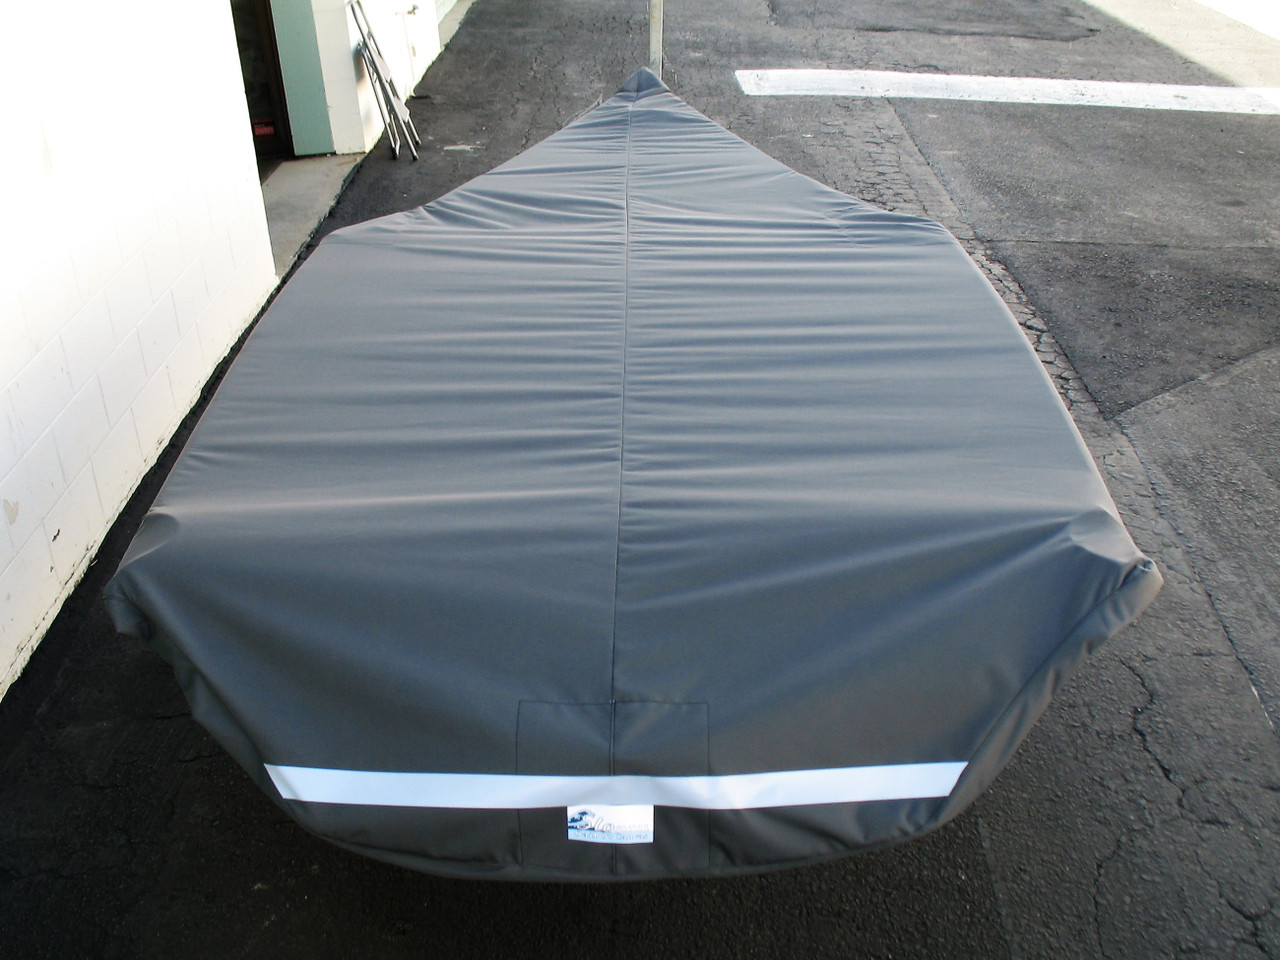 Optional reflective tape shown